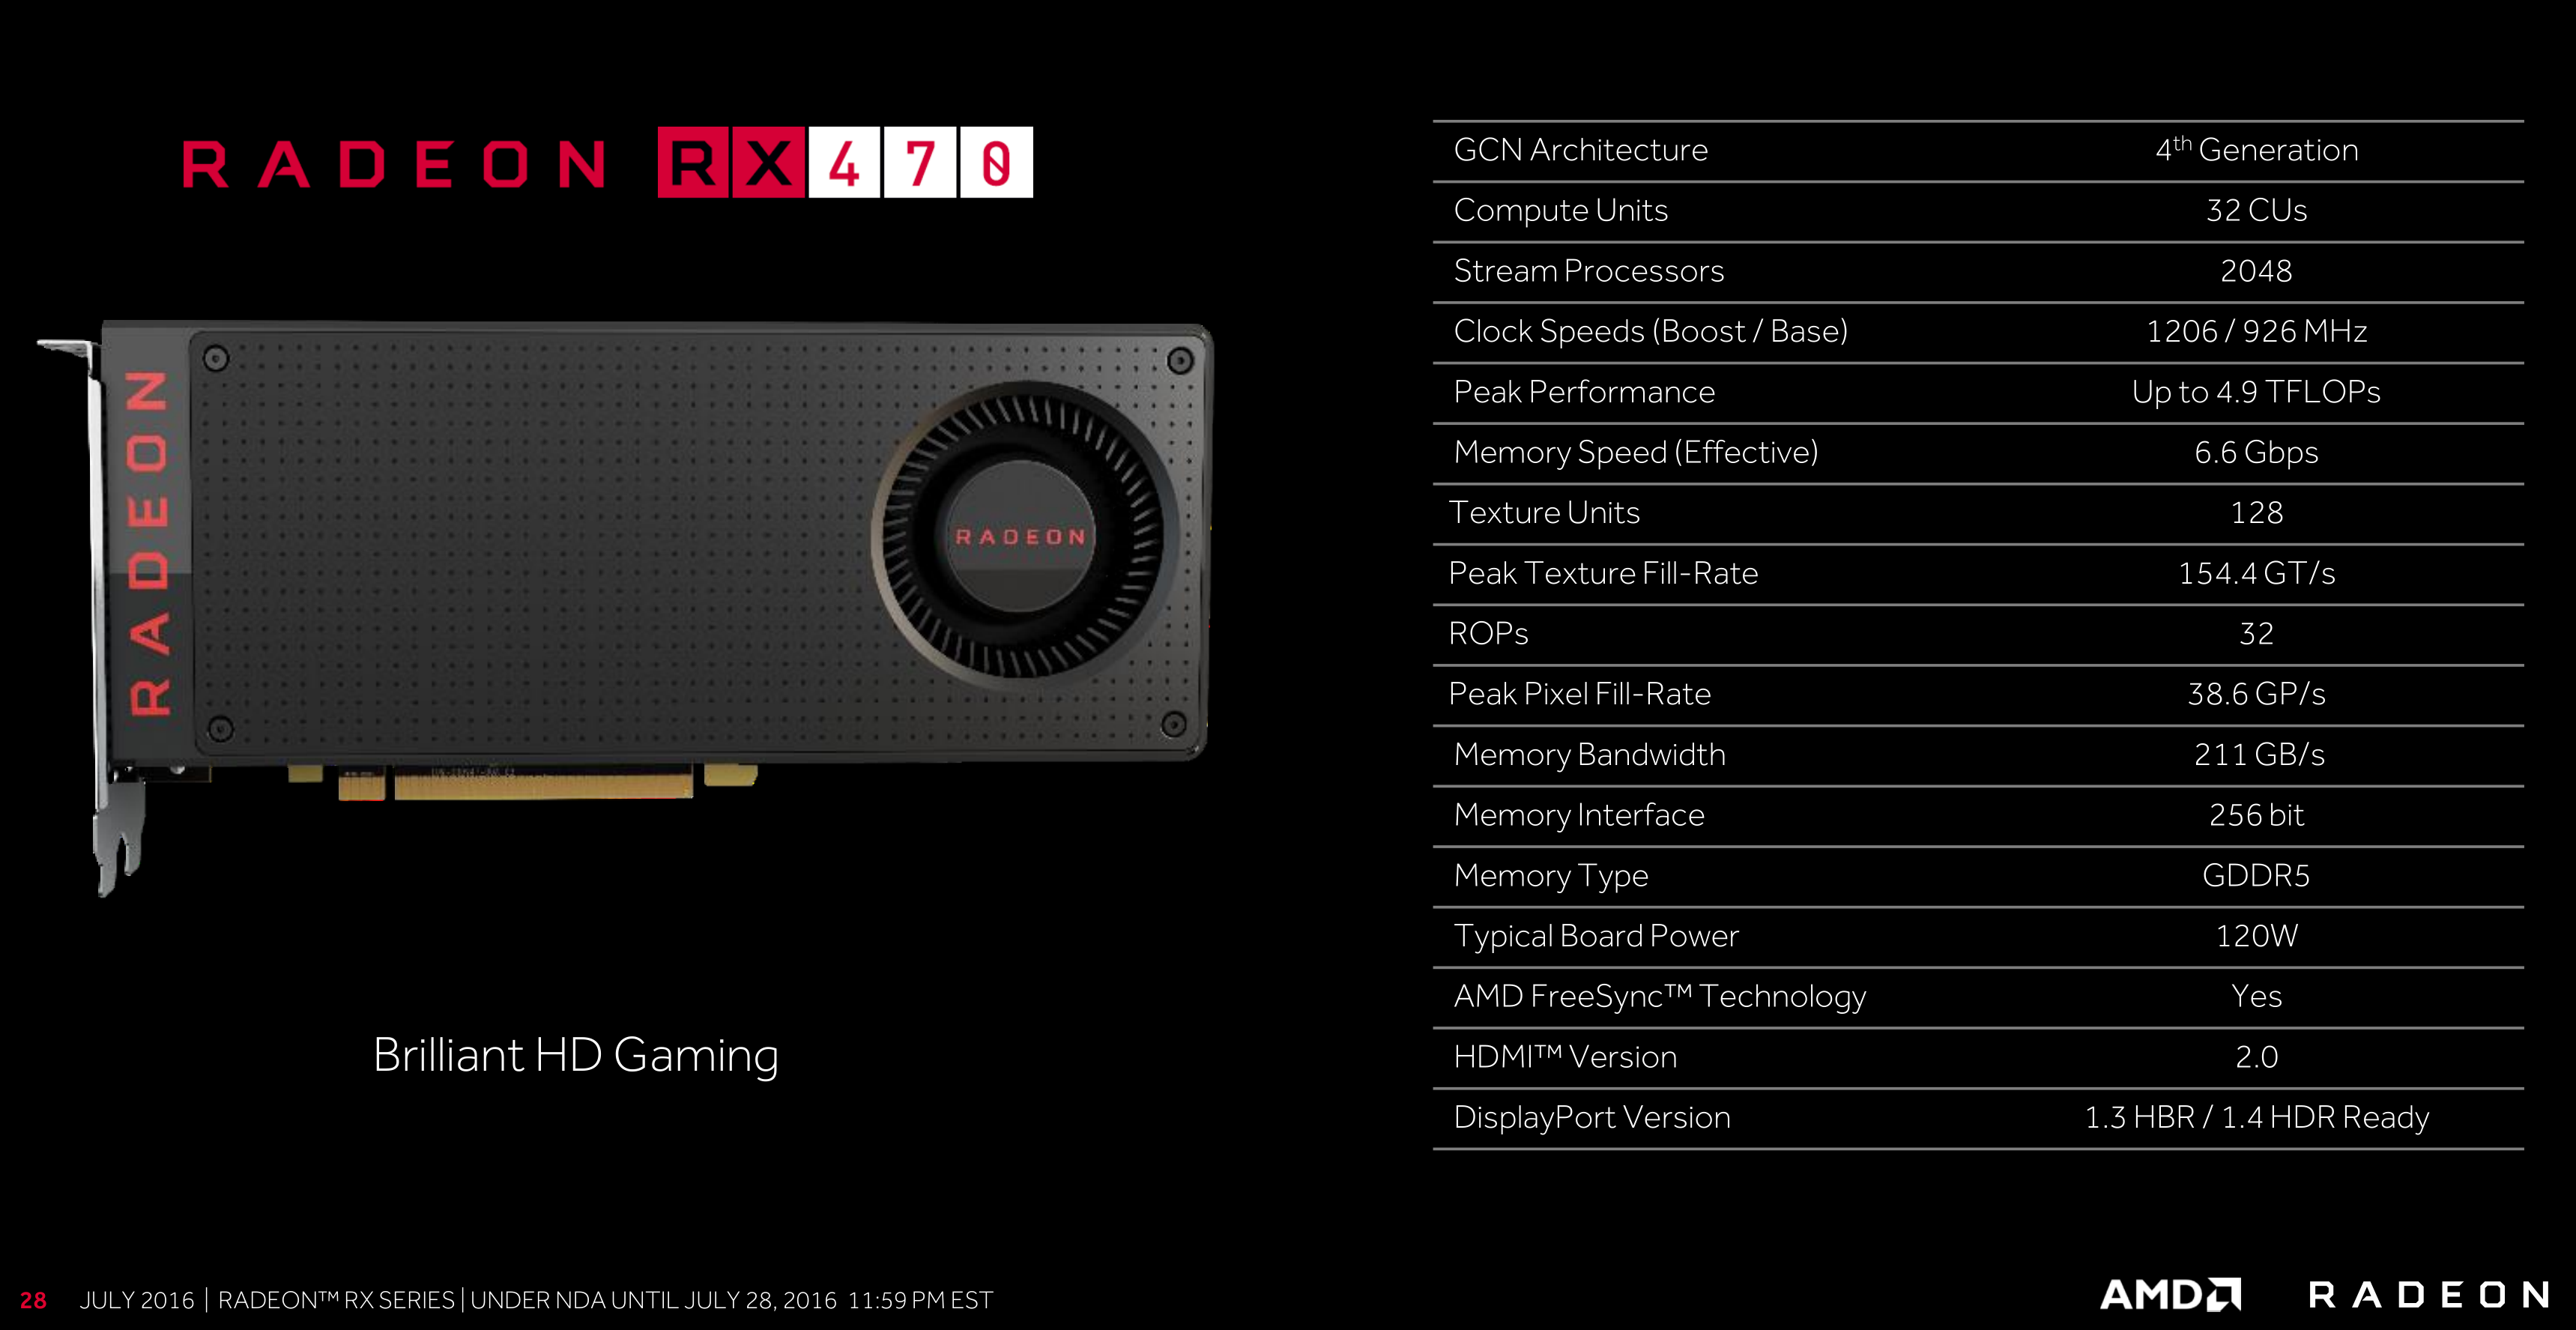 Full details revealed: AMD Radeon RX 470 and RX 460 specs